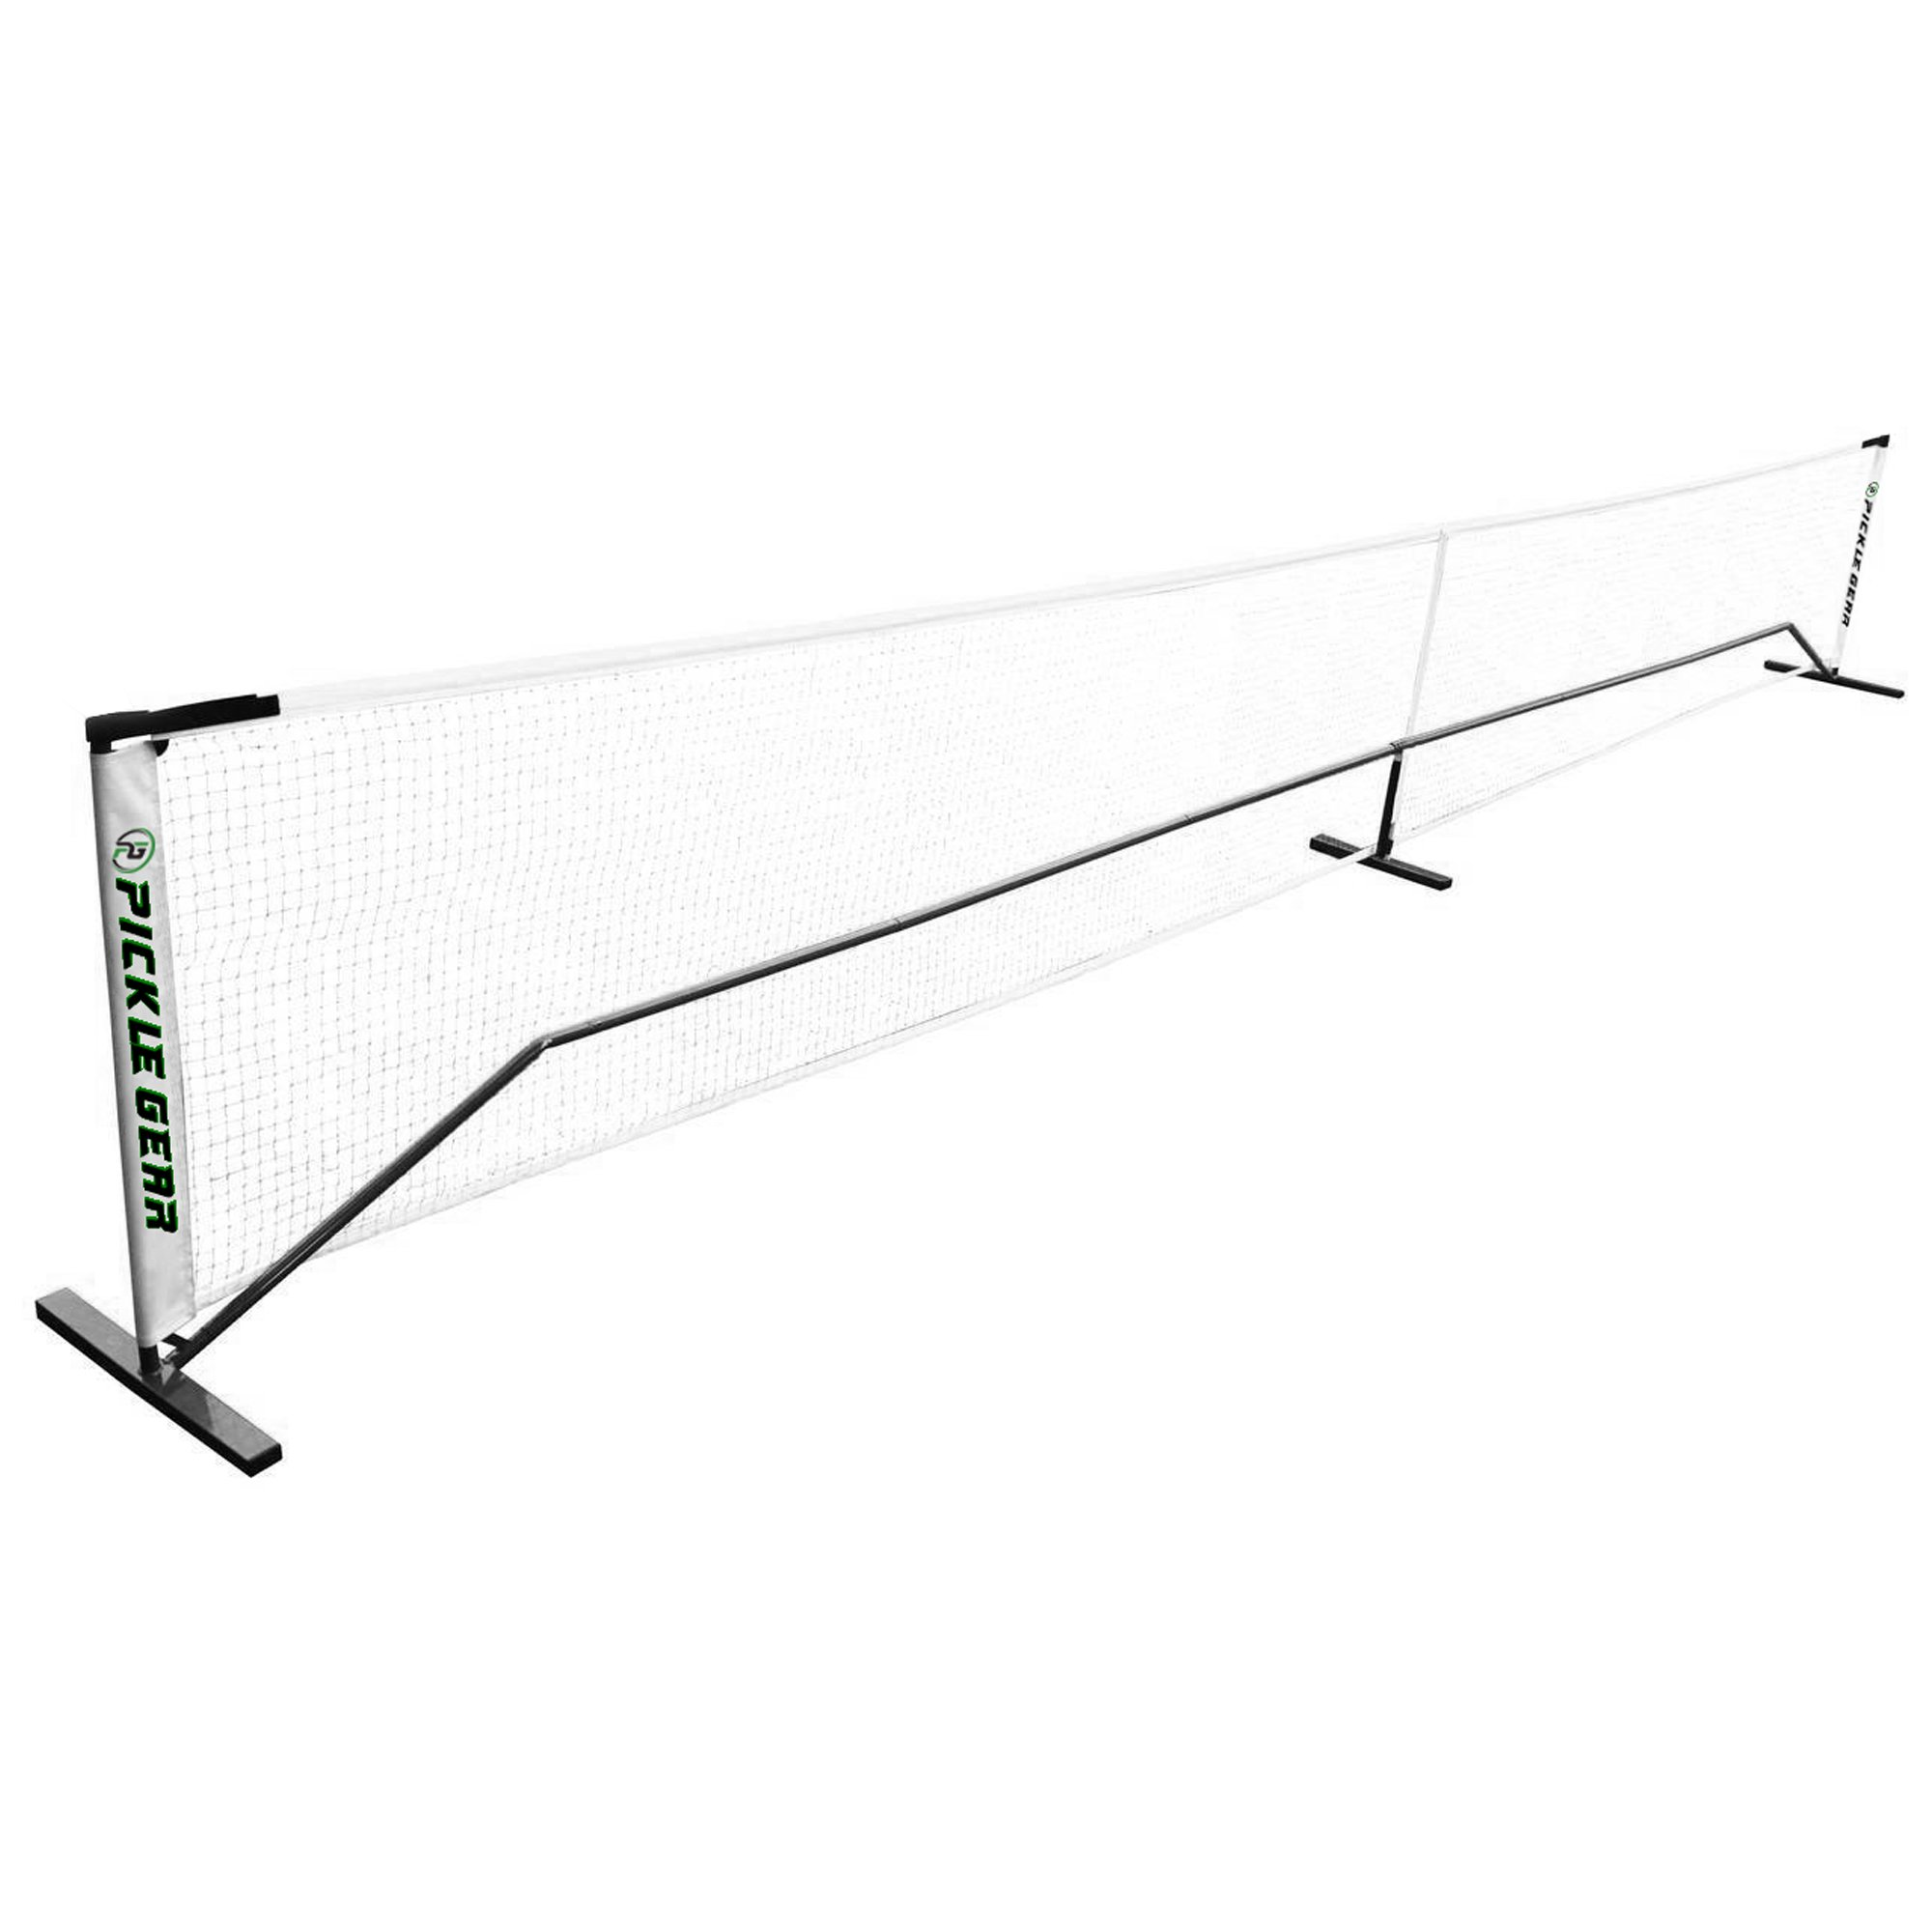 Premium Portable Pickleball Net by Pickle Gear by Picklegear